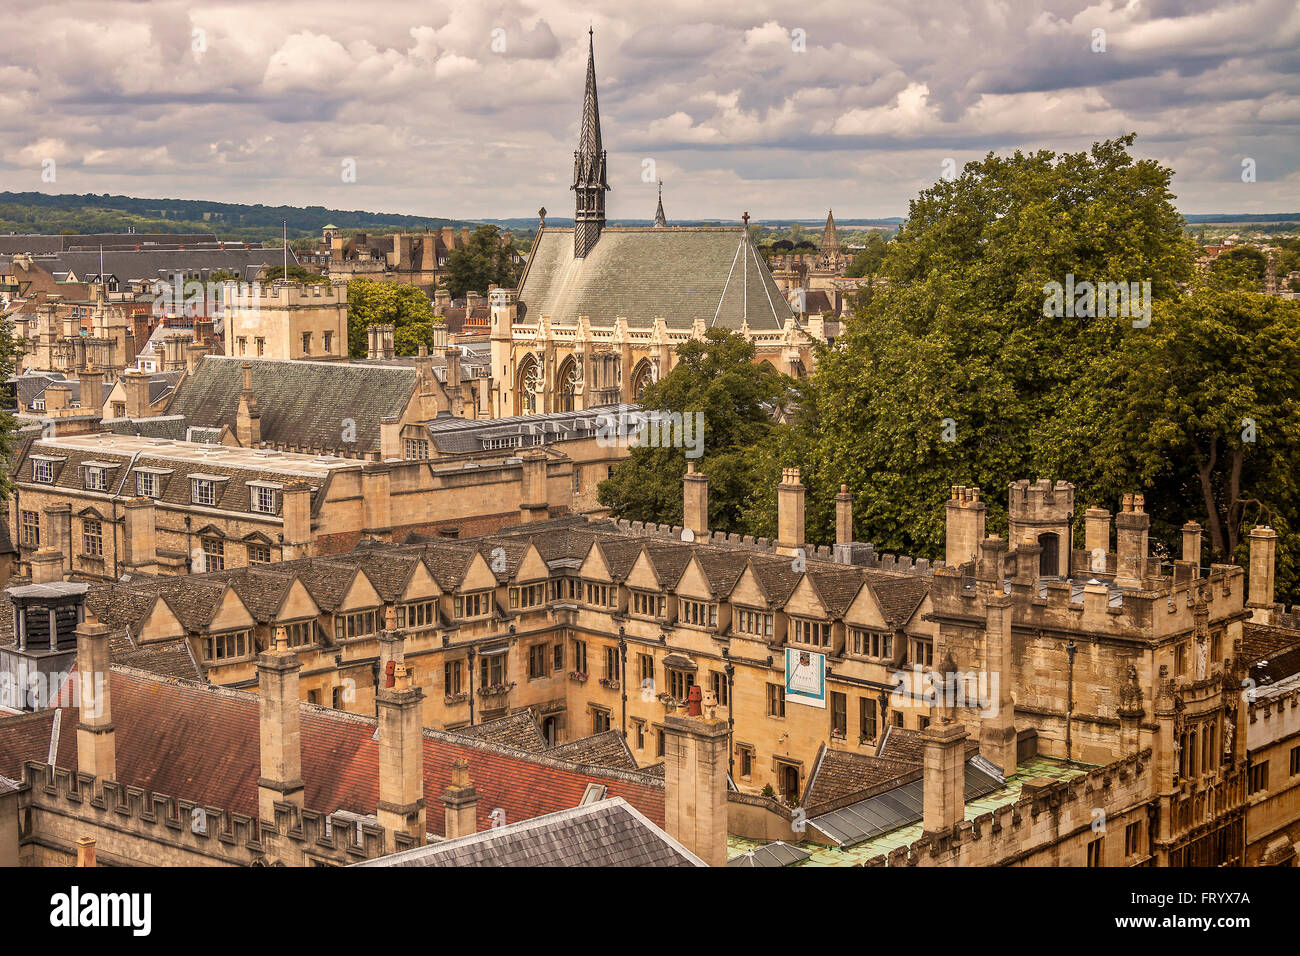 Exeter and Brasenose Colleges Oxford UK - Stock Image